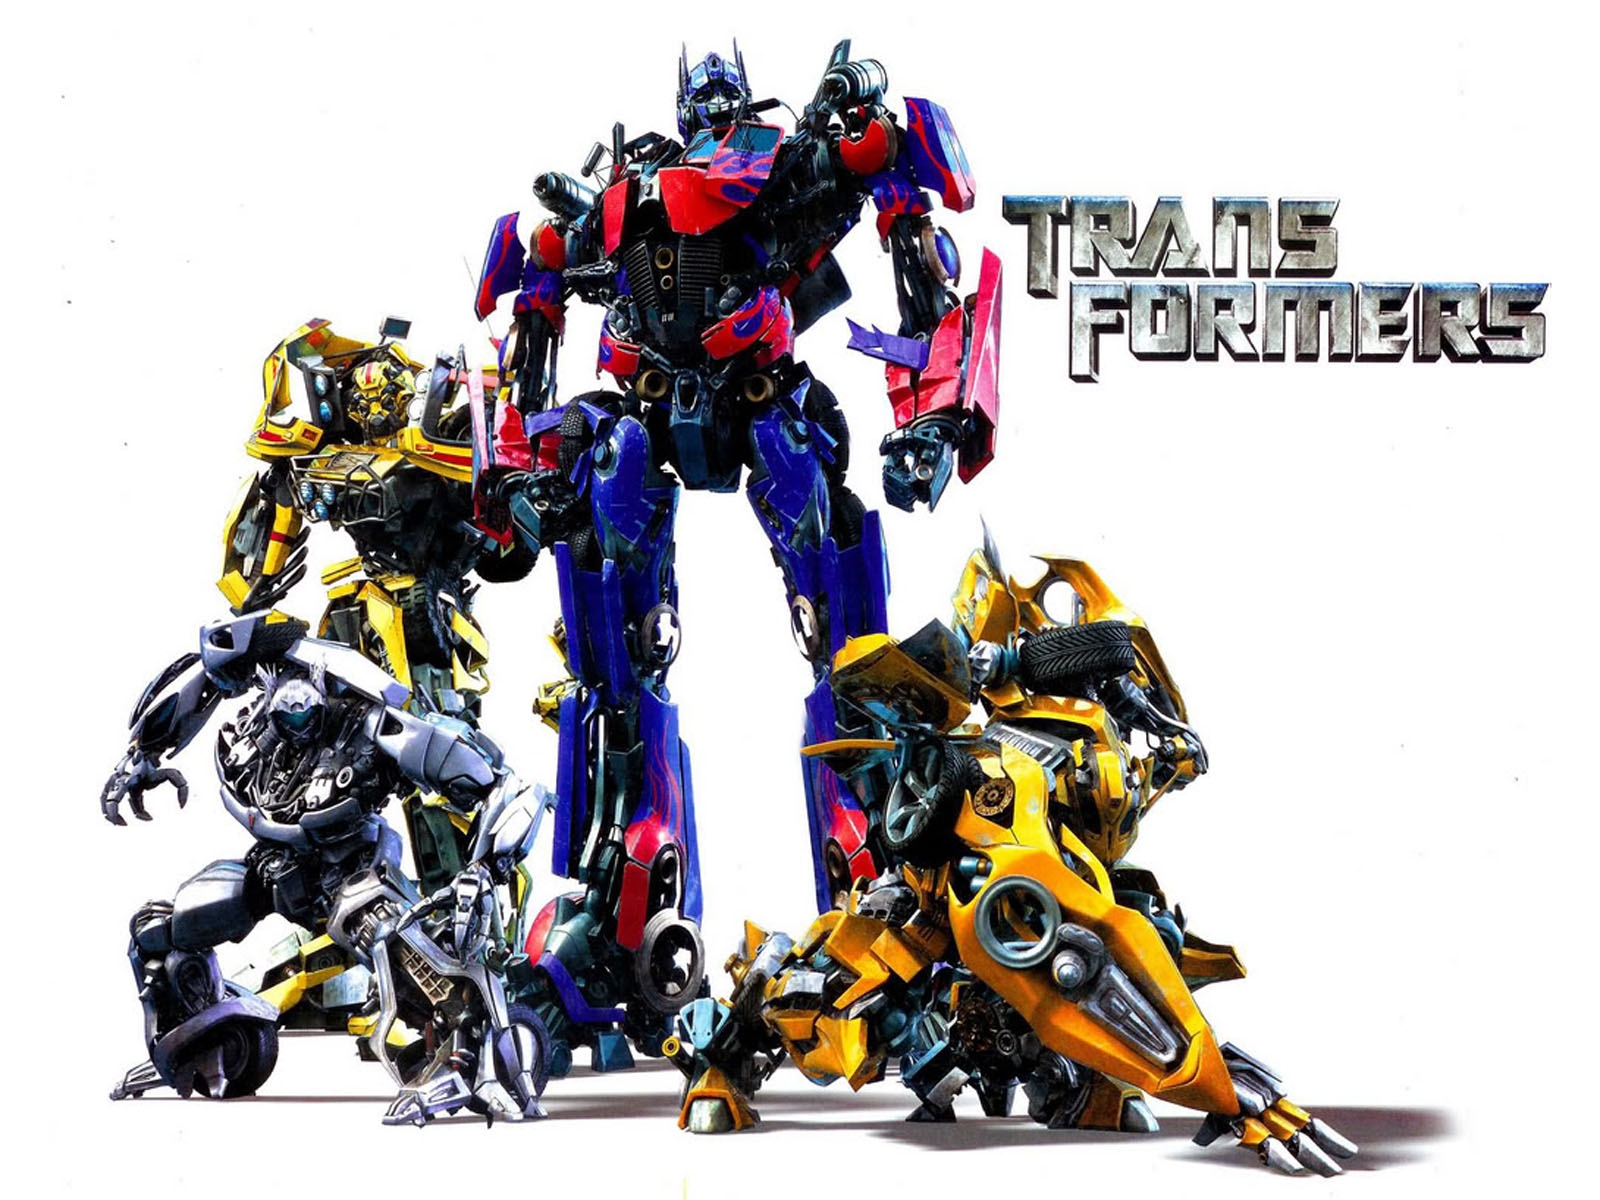 Naughty Wallpapers With Quotes Wallpapers Transformers Wallpapers